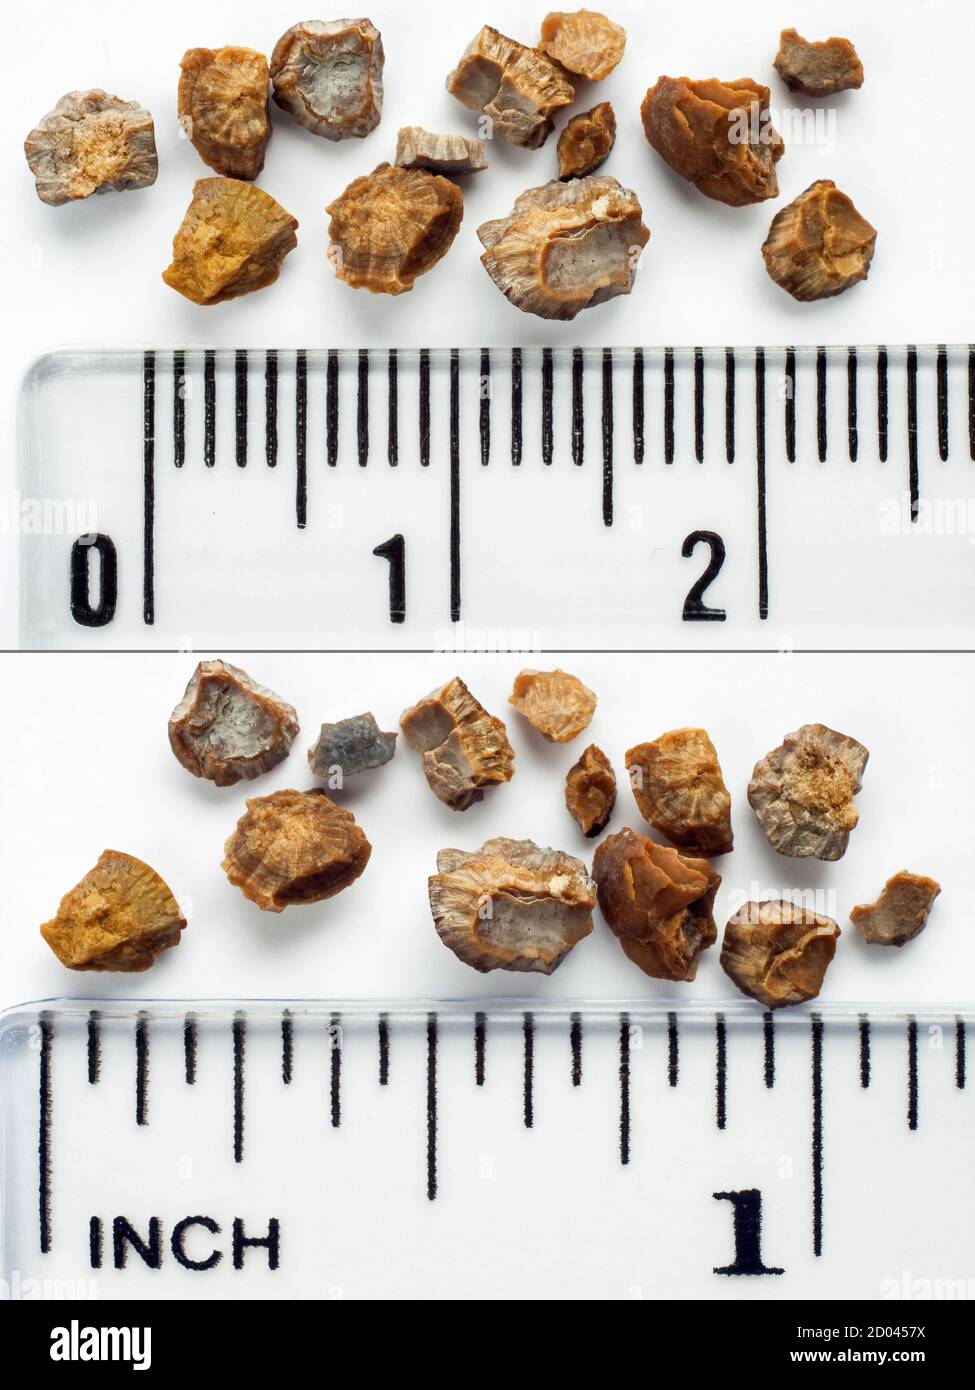 Fragments Of A Kidney Stone Kidney Stone Broken Up By Extracorporeal Shock Wave Lithotripsy Eswl Scale In Centimeters And Inches Stock Photo Alamy